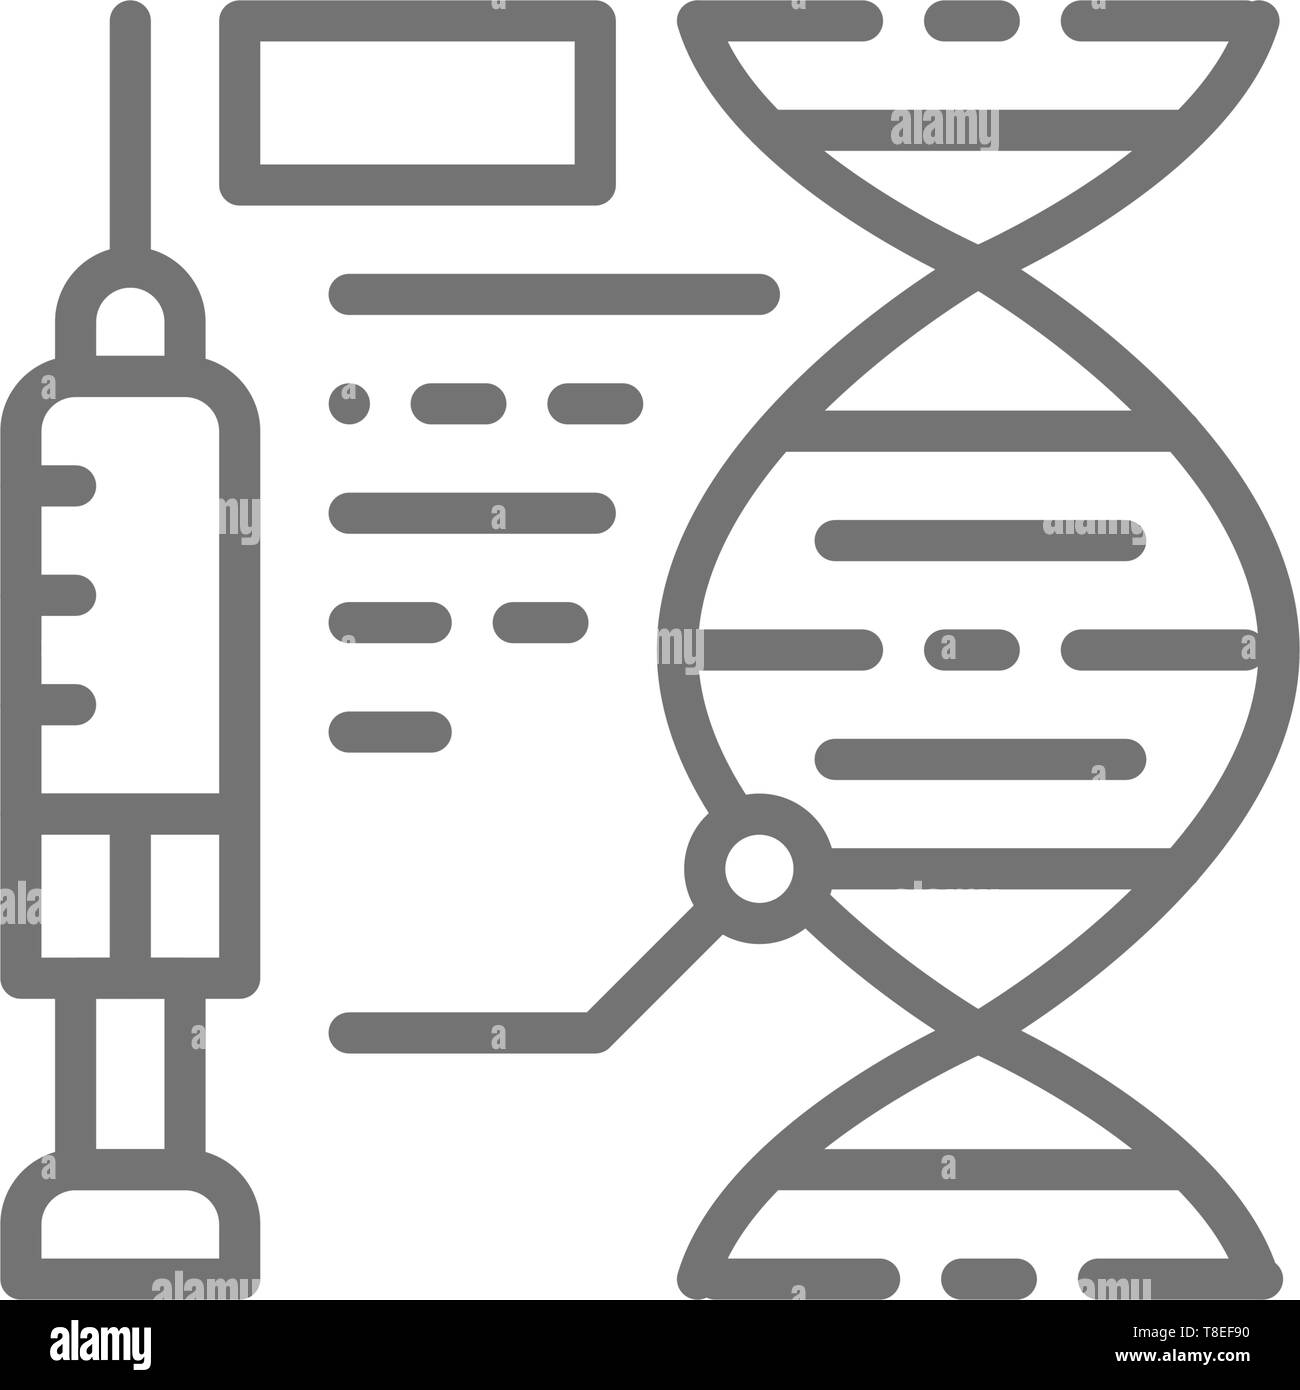 Vaccine formula, injection of medicine, dna line icon. - Stock Image